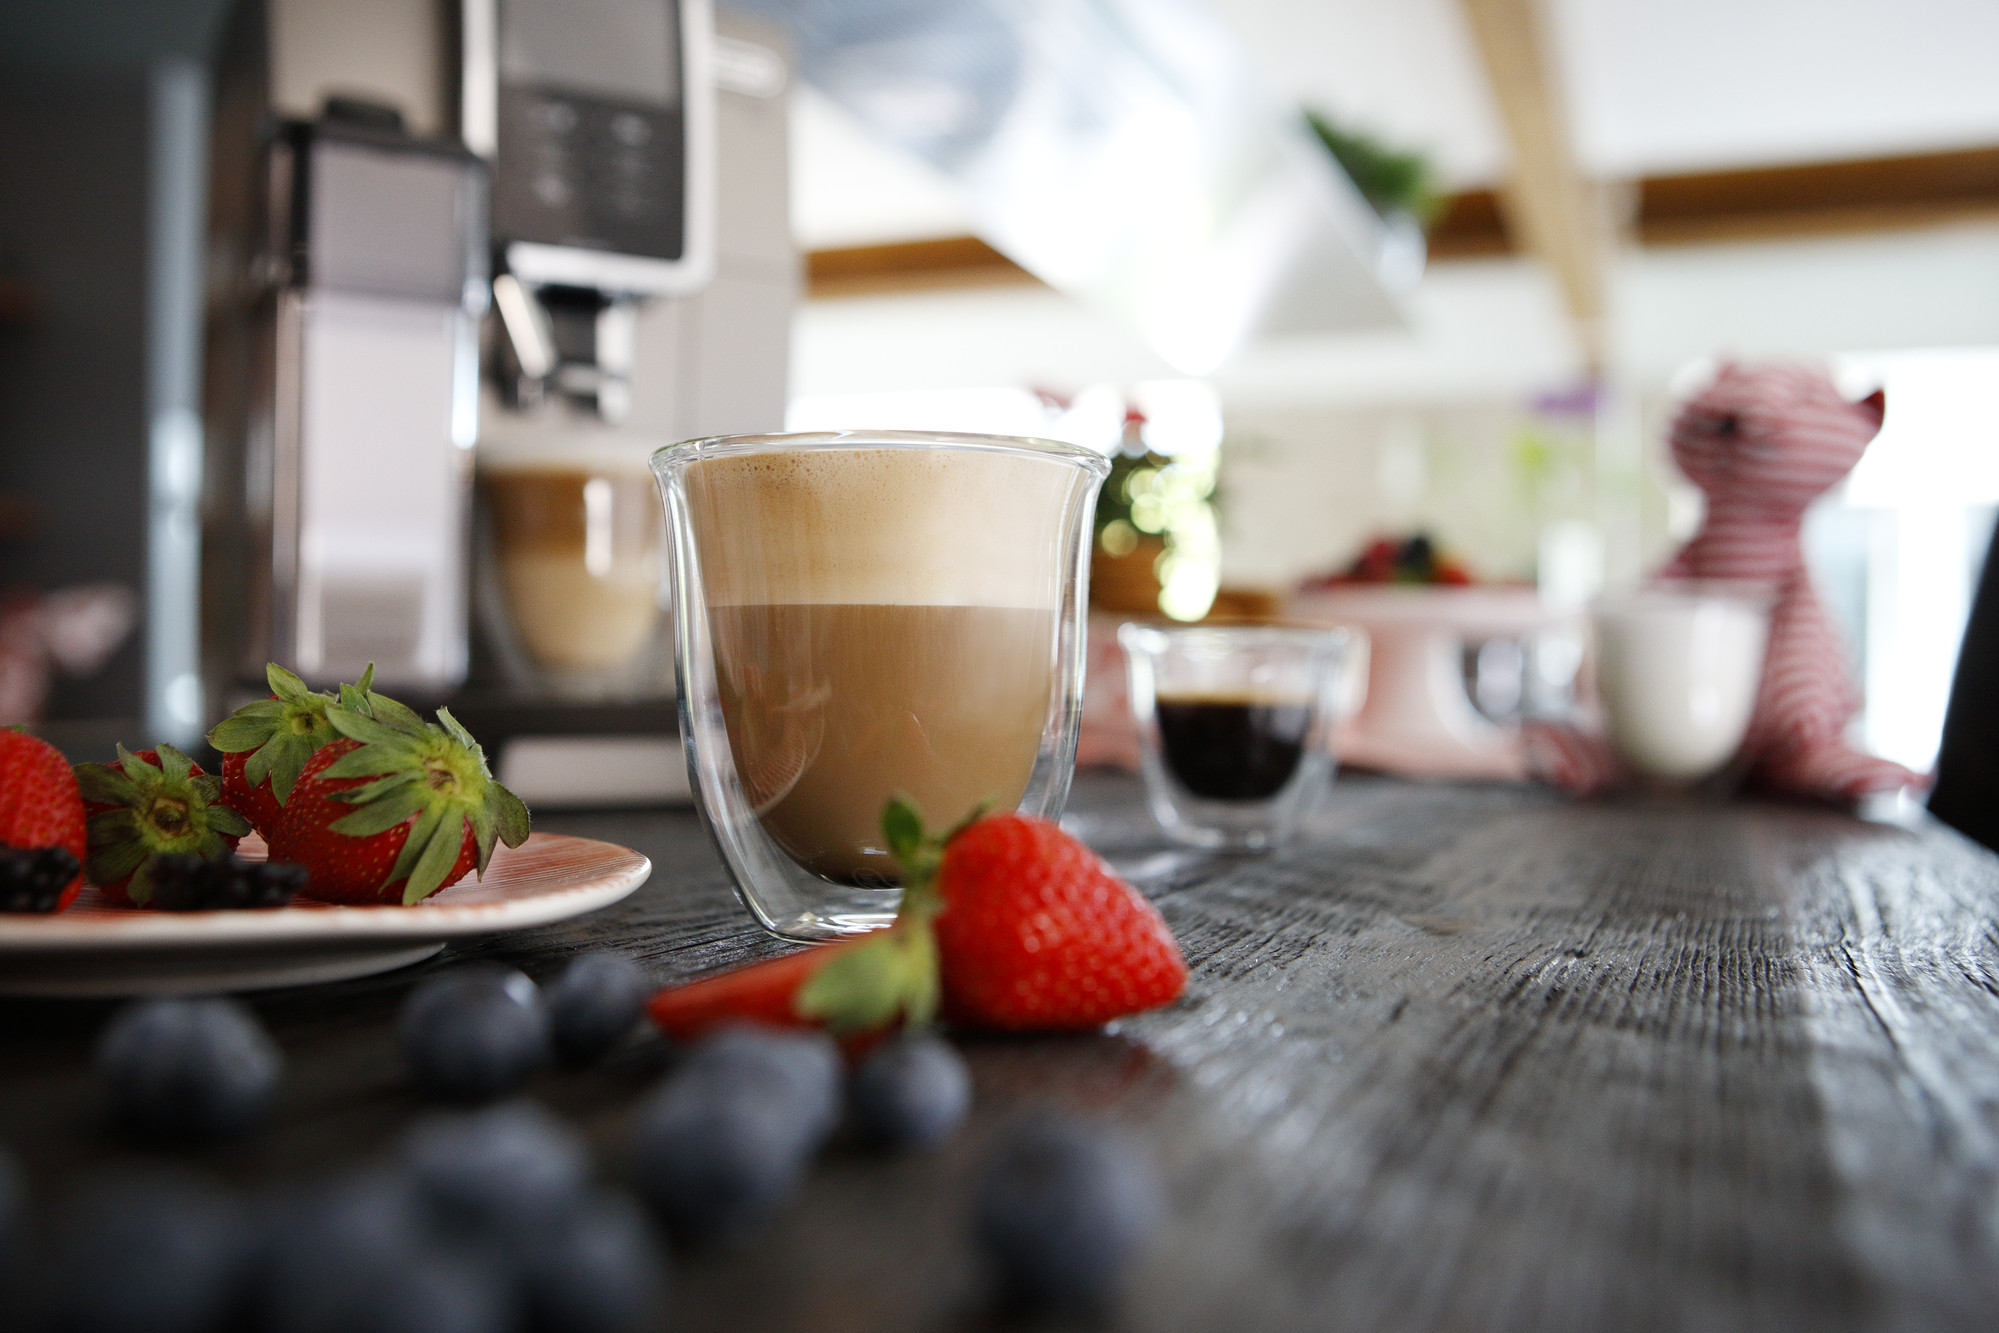 strawberries and blueberries placed around a cup of cappucino